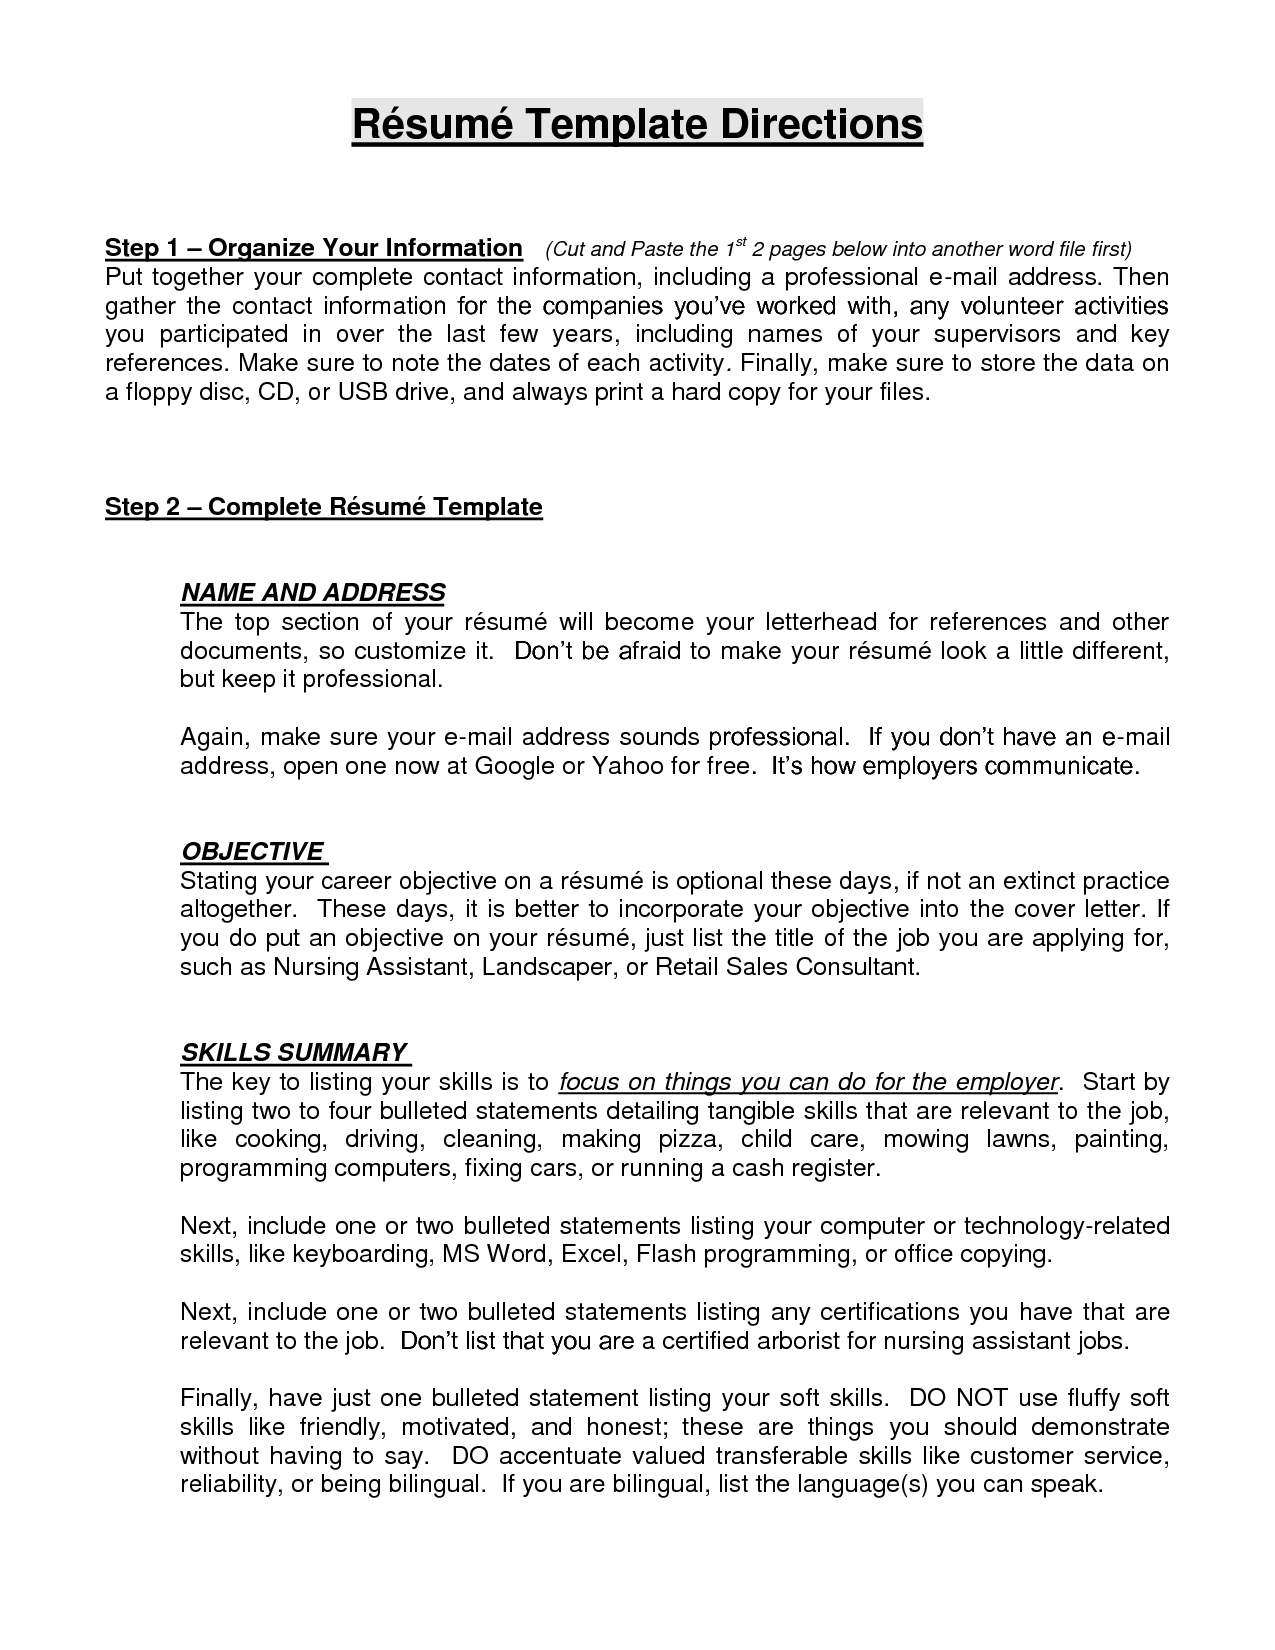 a resume objective resume building objective statement write a good - Good Resume Objectives Samples